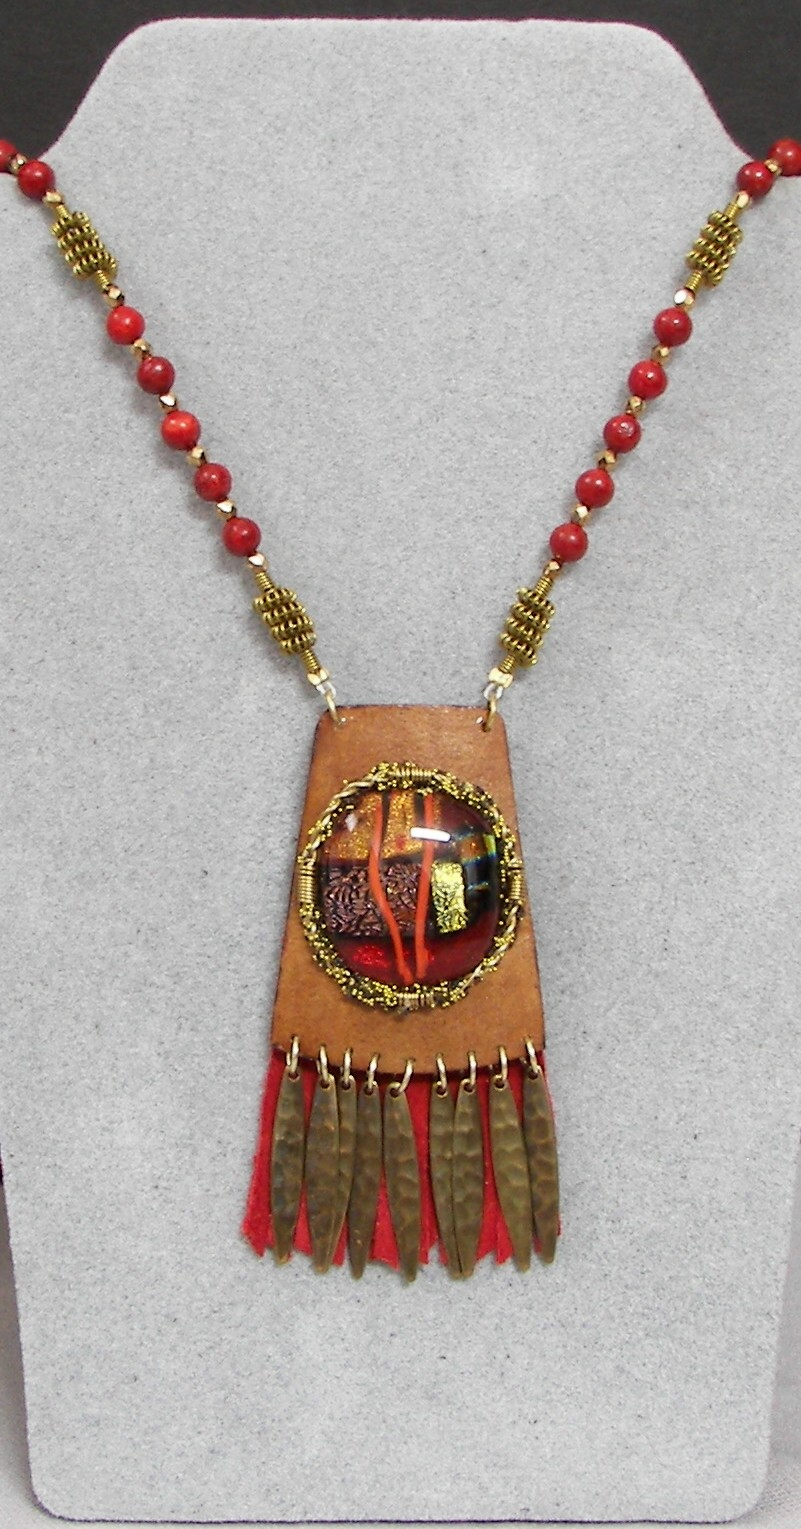 gourd-jewelry-red-and-gold-may-2012